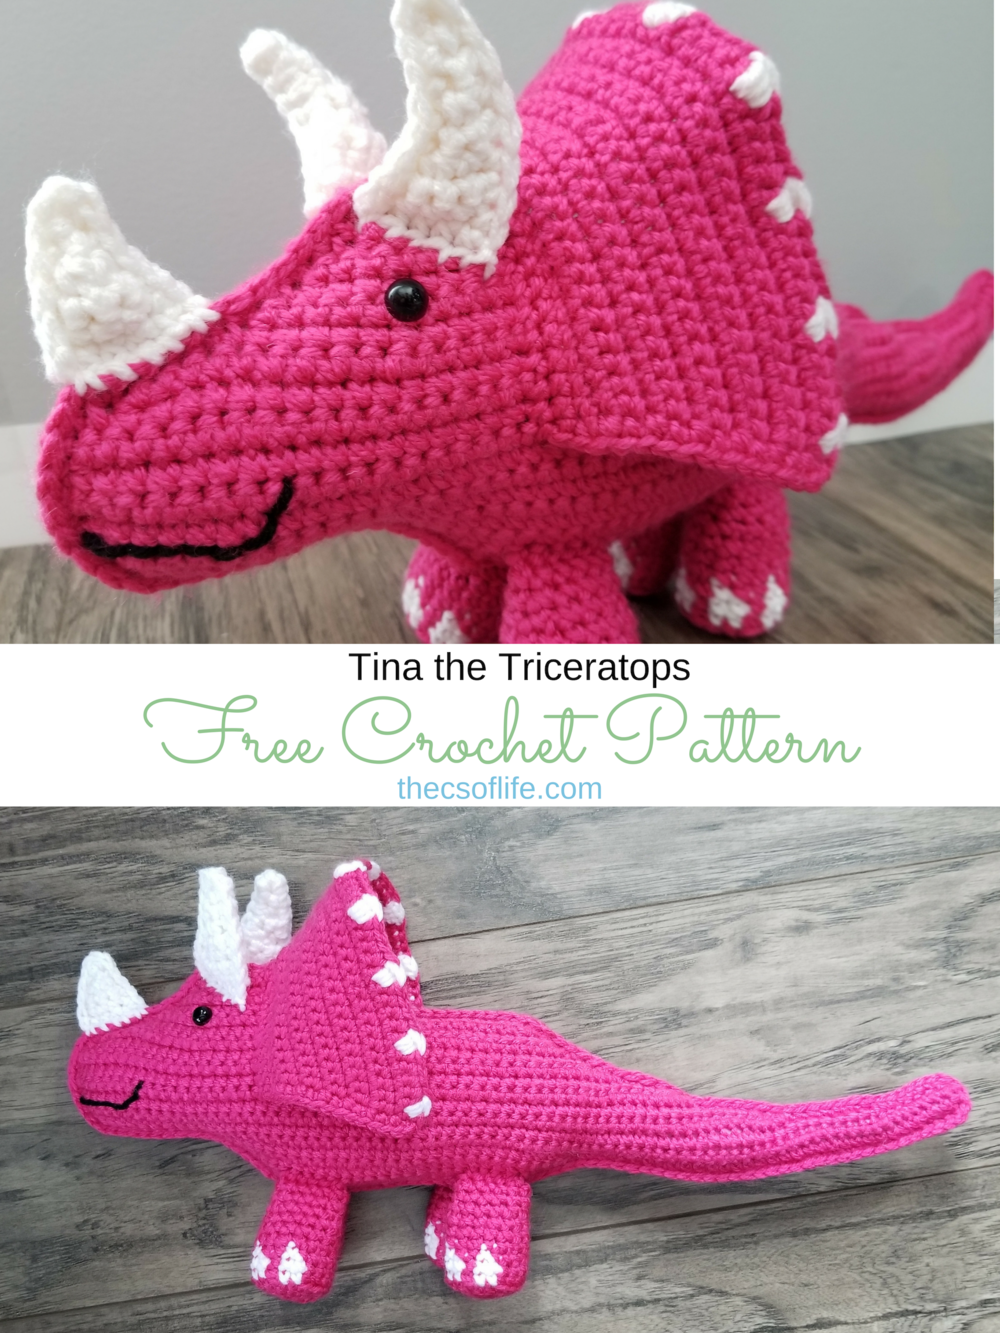 Tina the Triceratops - Free Crochet Pattern